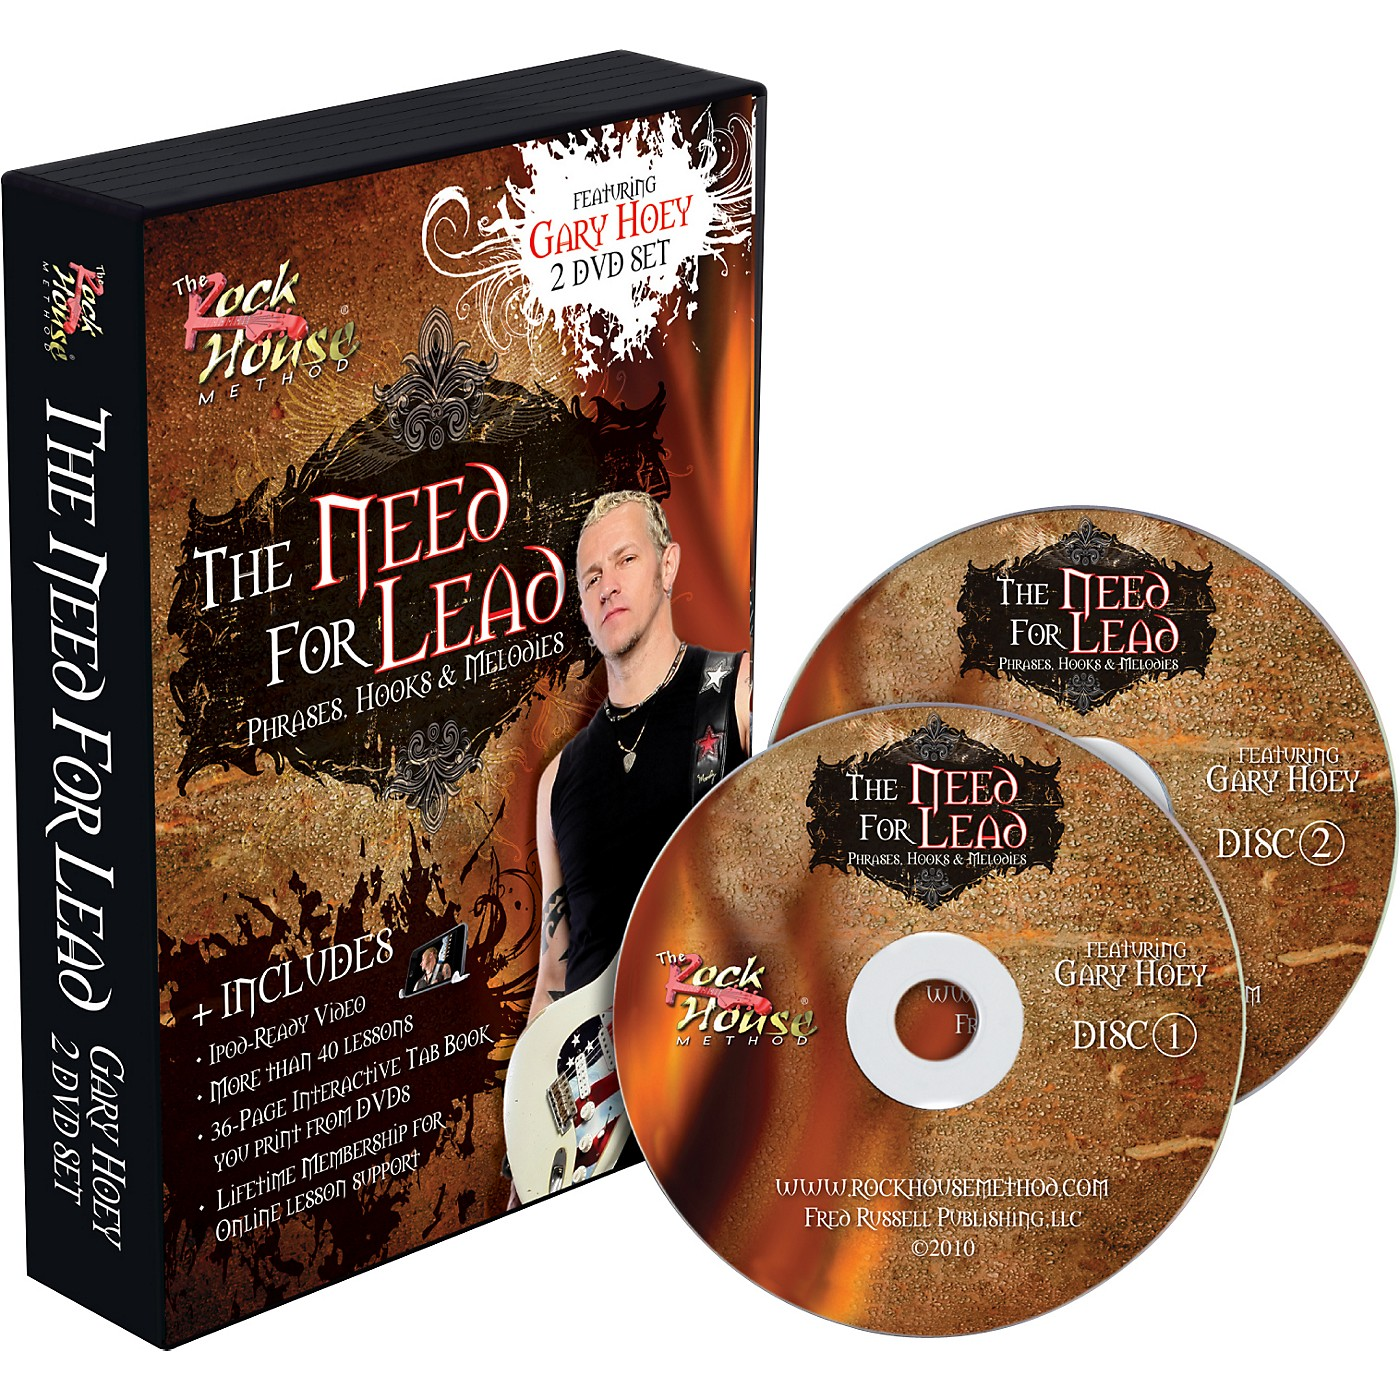 Hal Leonard Gary Hoey: The Need For Lead Phrases, Hooks &  Melodies DVD thumbnail